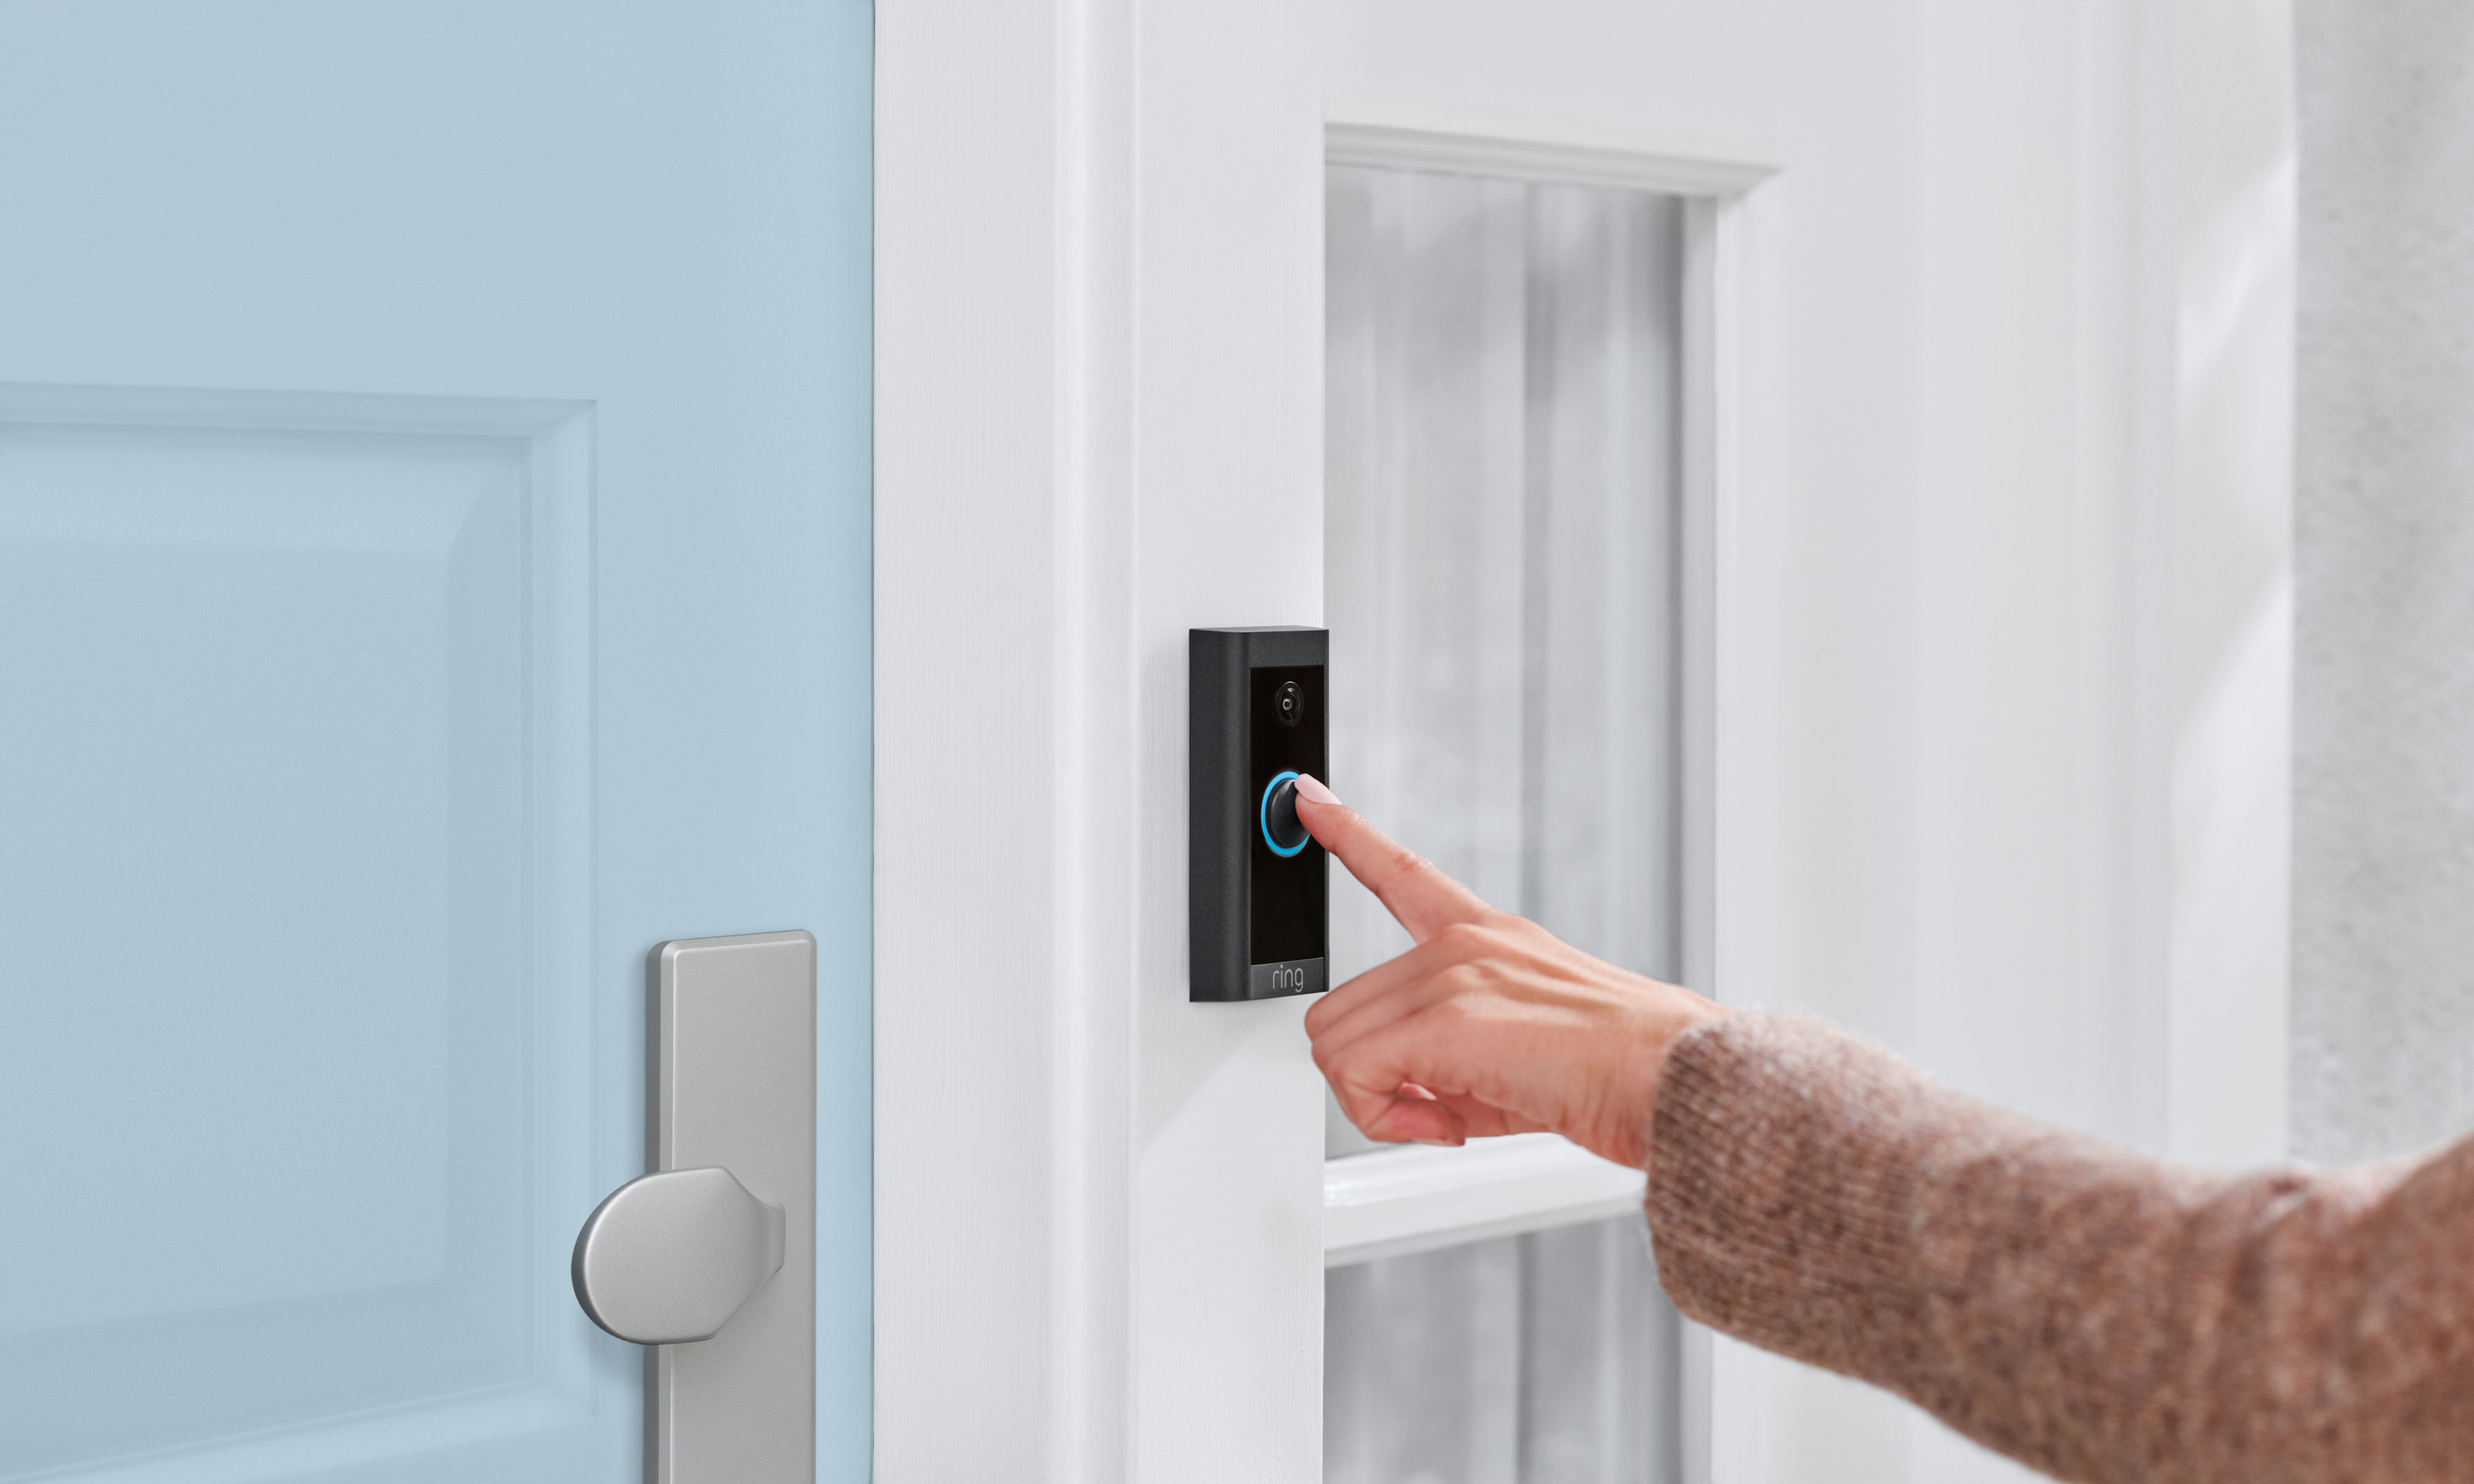 Ring's newest video doorbell is smaller, cheaper, capable as ever